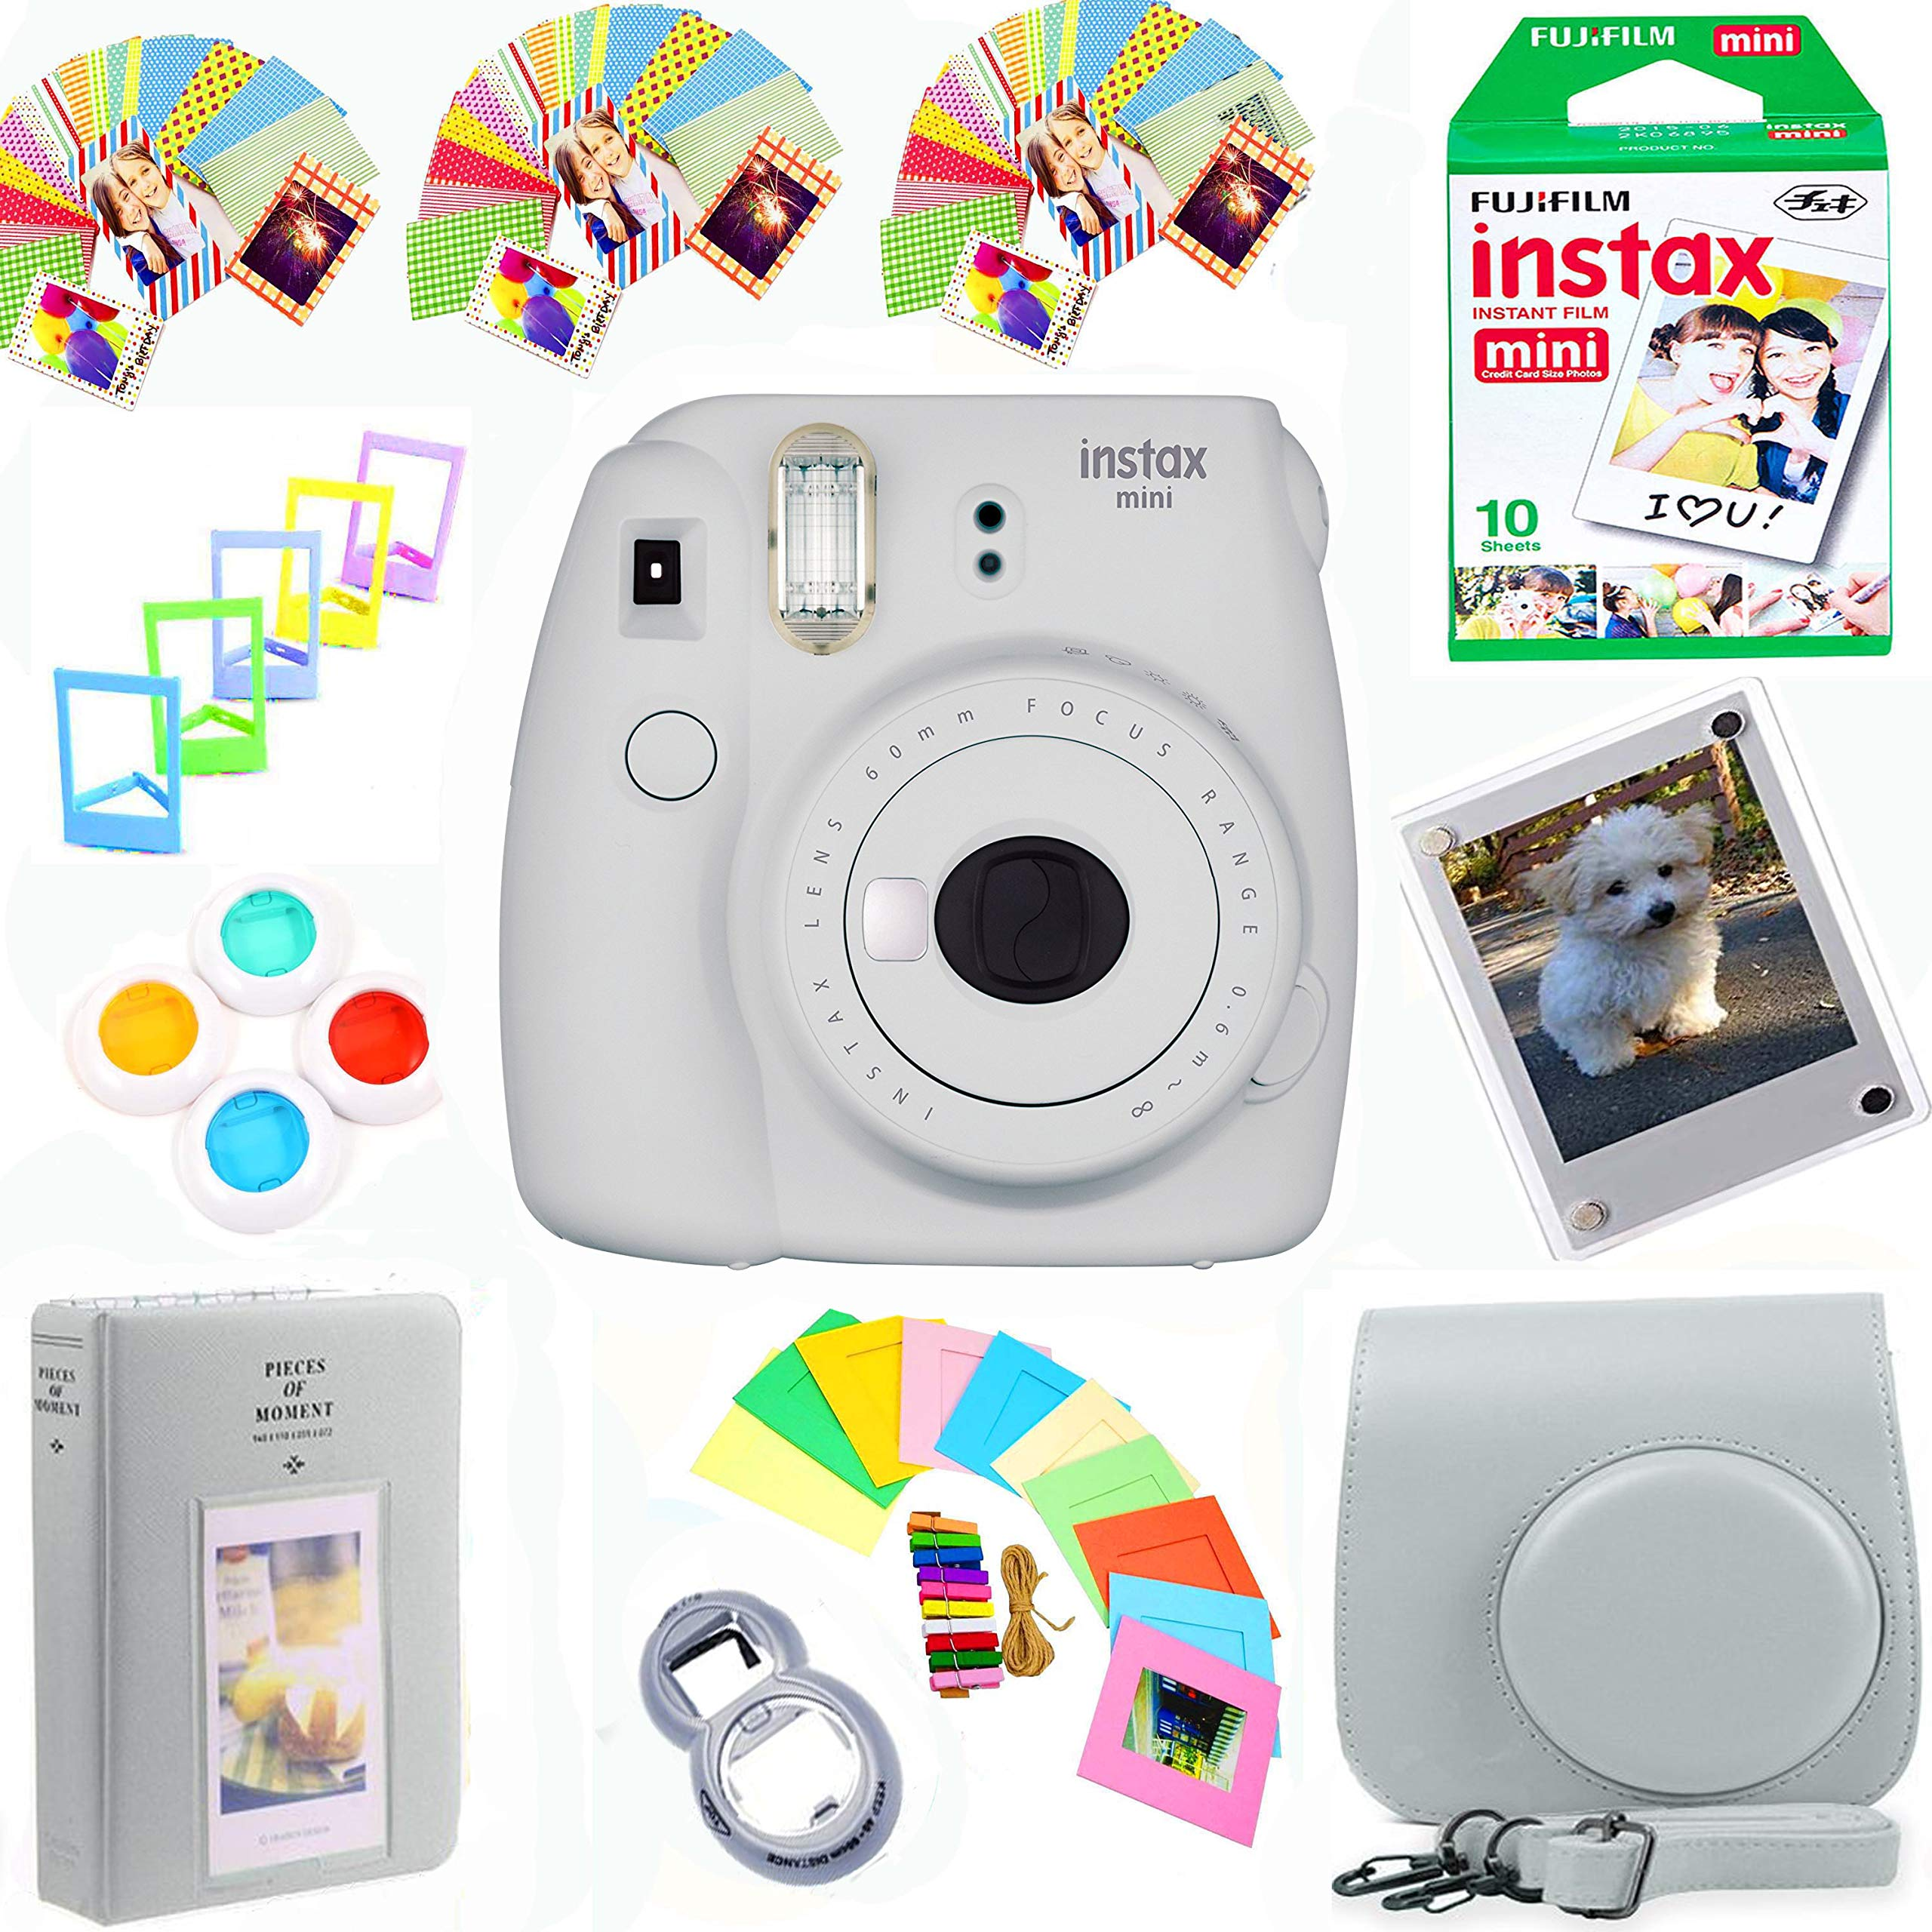 Fujifilm Instax Mini 9 Film Camera (Smokey White) + Film Pack(10 Shots) + Photix Pleather Case + Filters + Selfie Lens + Album + Frames & Stick-on Frames Exclusive Instax Design Bundle